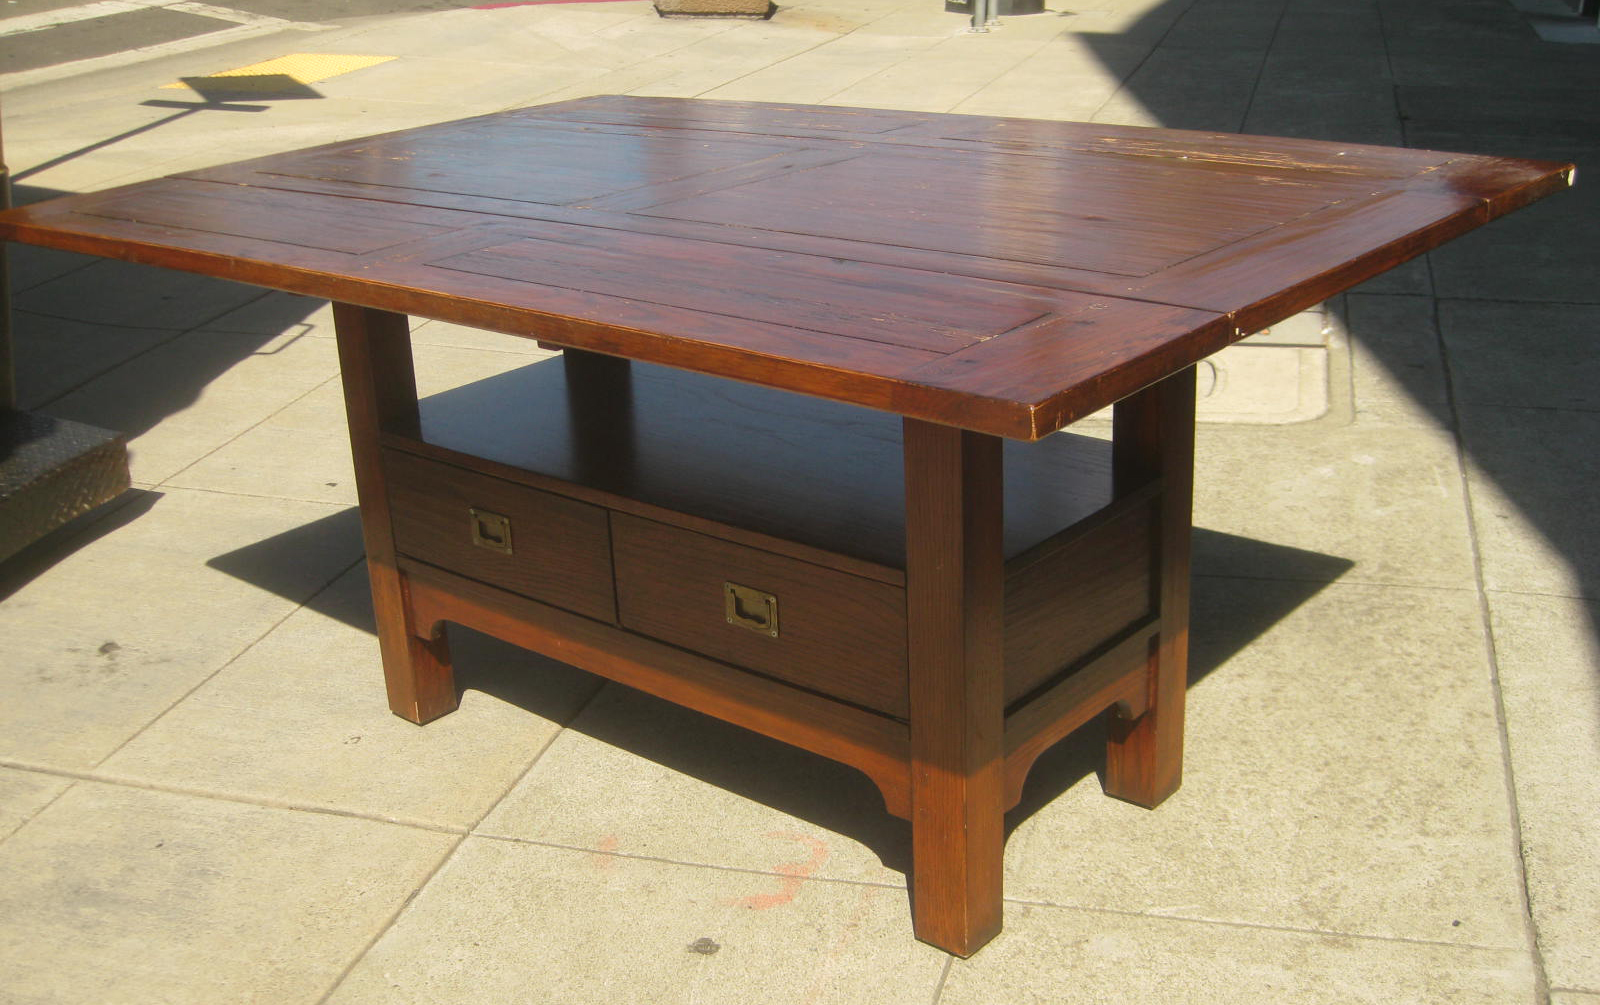 UHURU FURNITURE & COLLECTIBLES: SOLD - Country Kitchen Drop ...